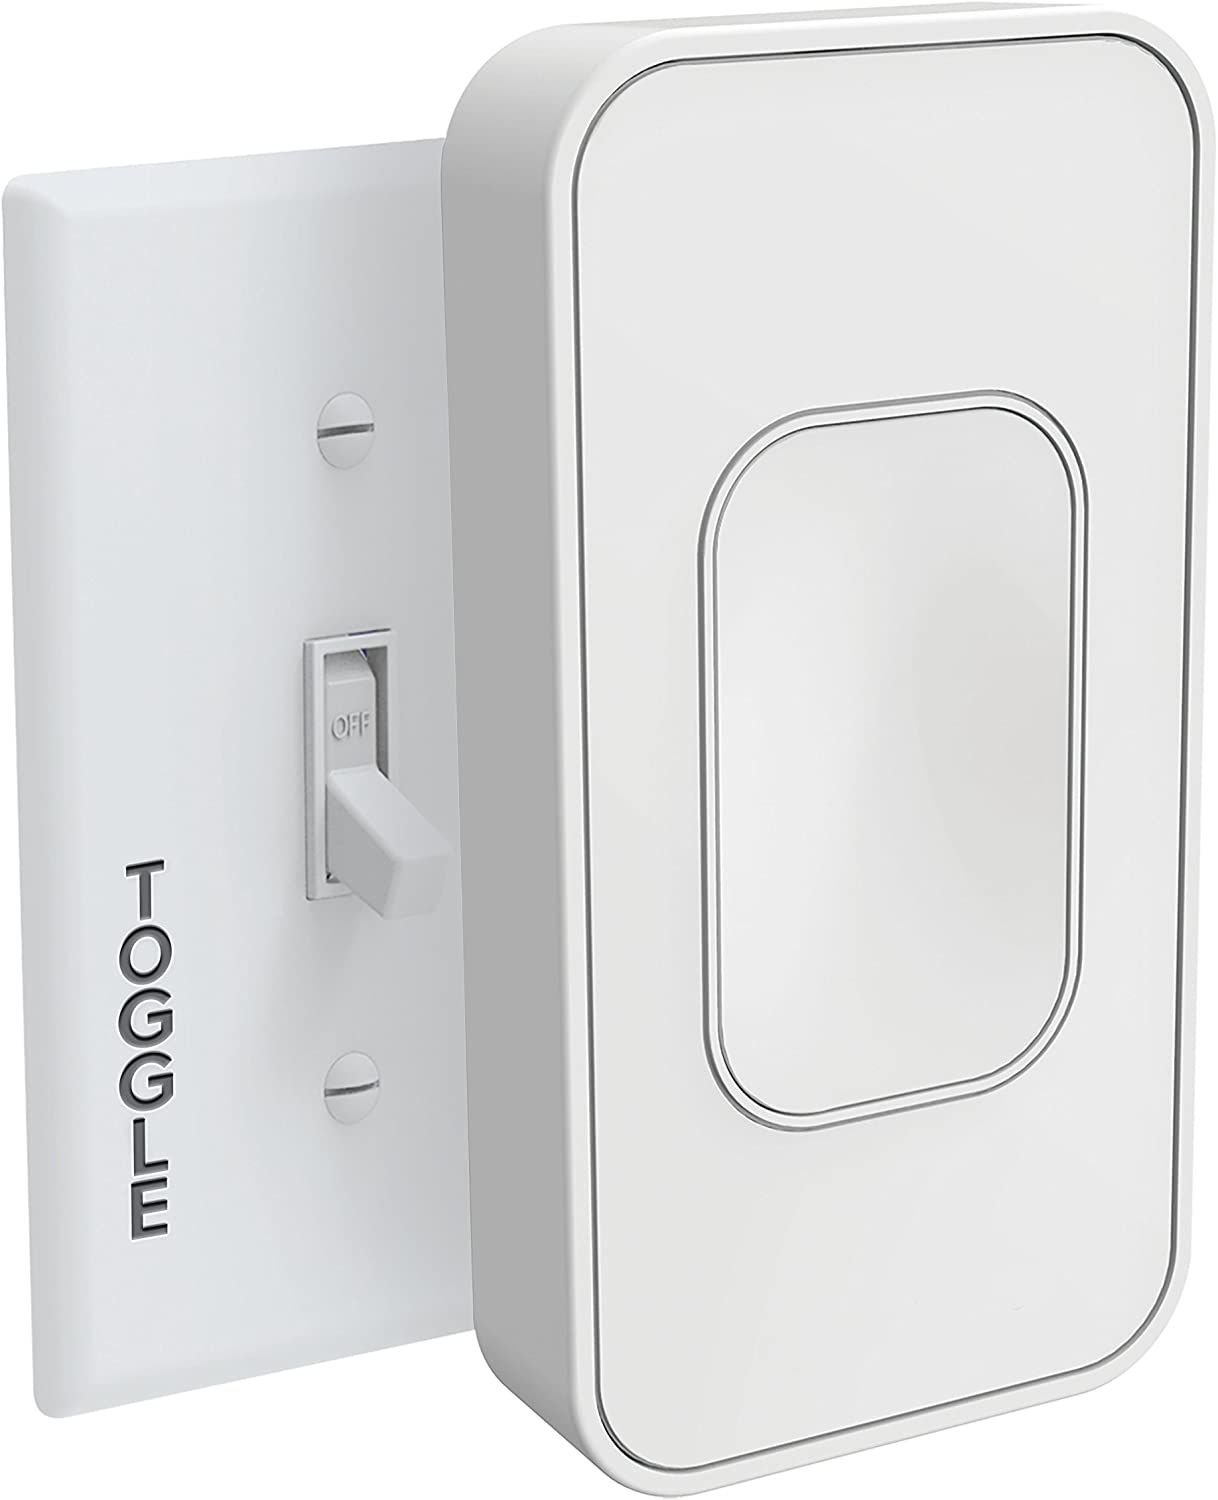 Switchmate for Toggle Style Light Switches by SimplySmart Home - -  Amazon.comAmazon.com